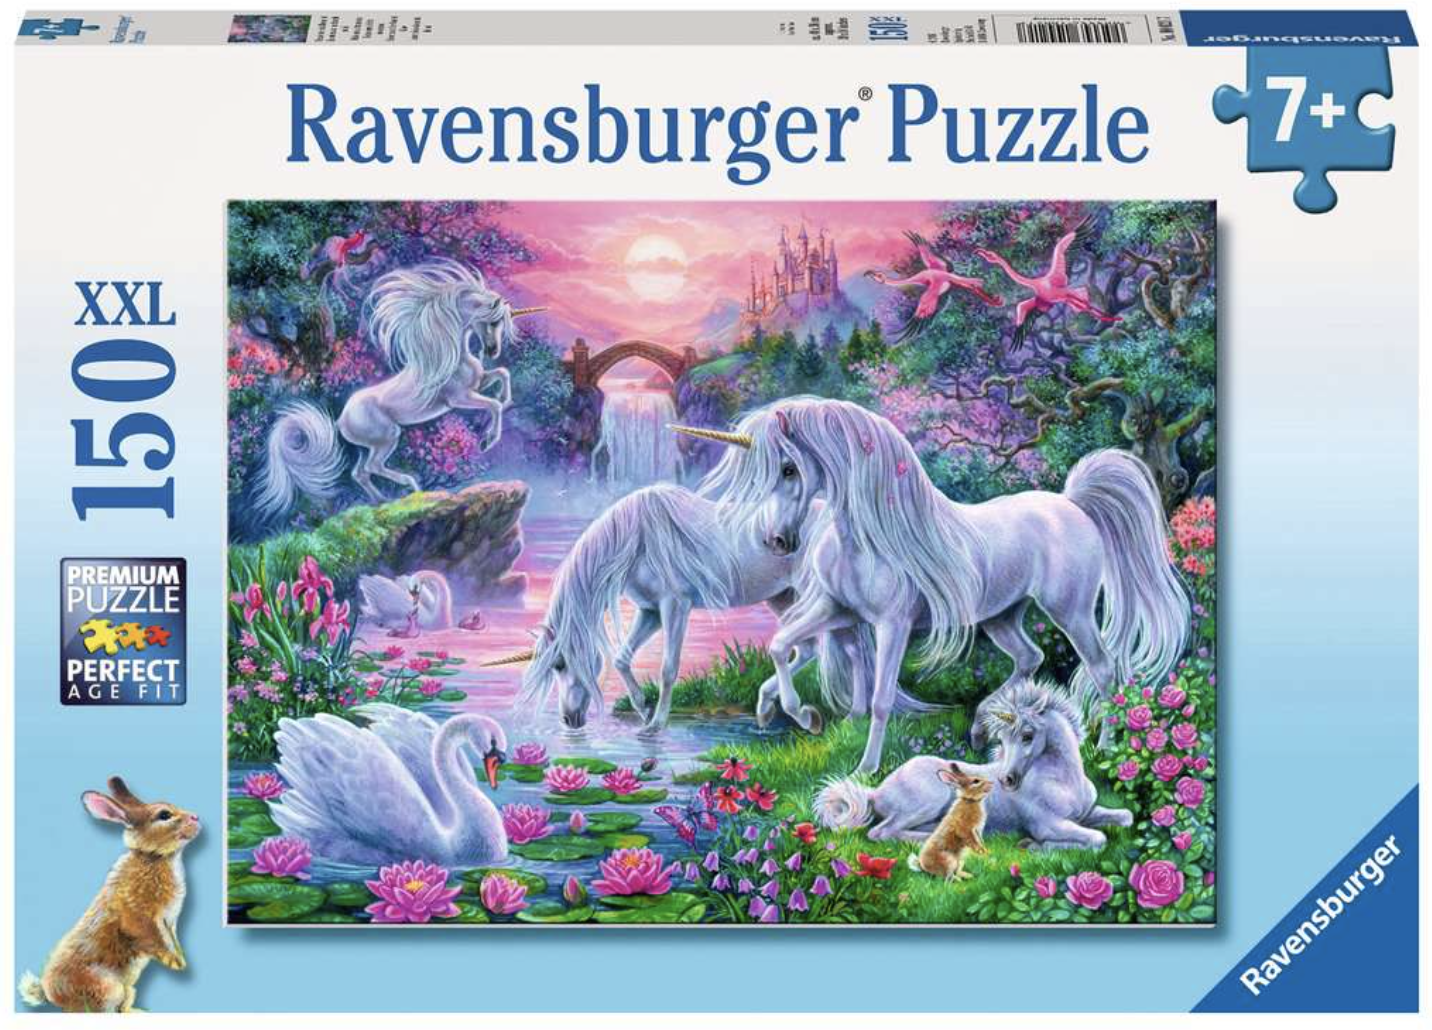 Unicorns in the Sunset Glow 150 Piece Puzzle by Ravensburger